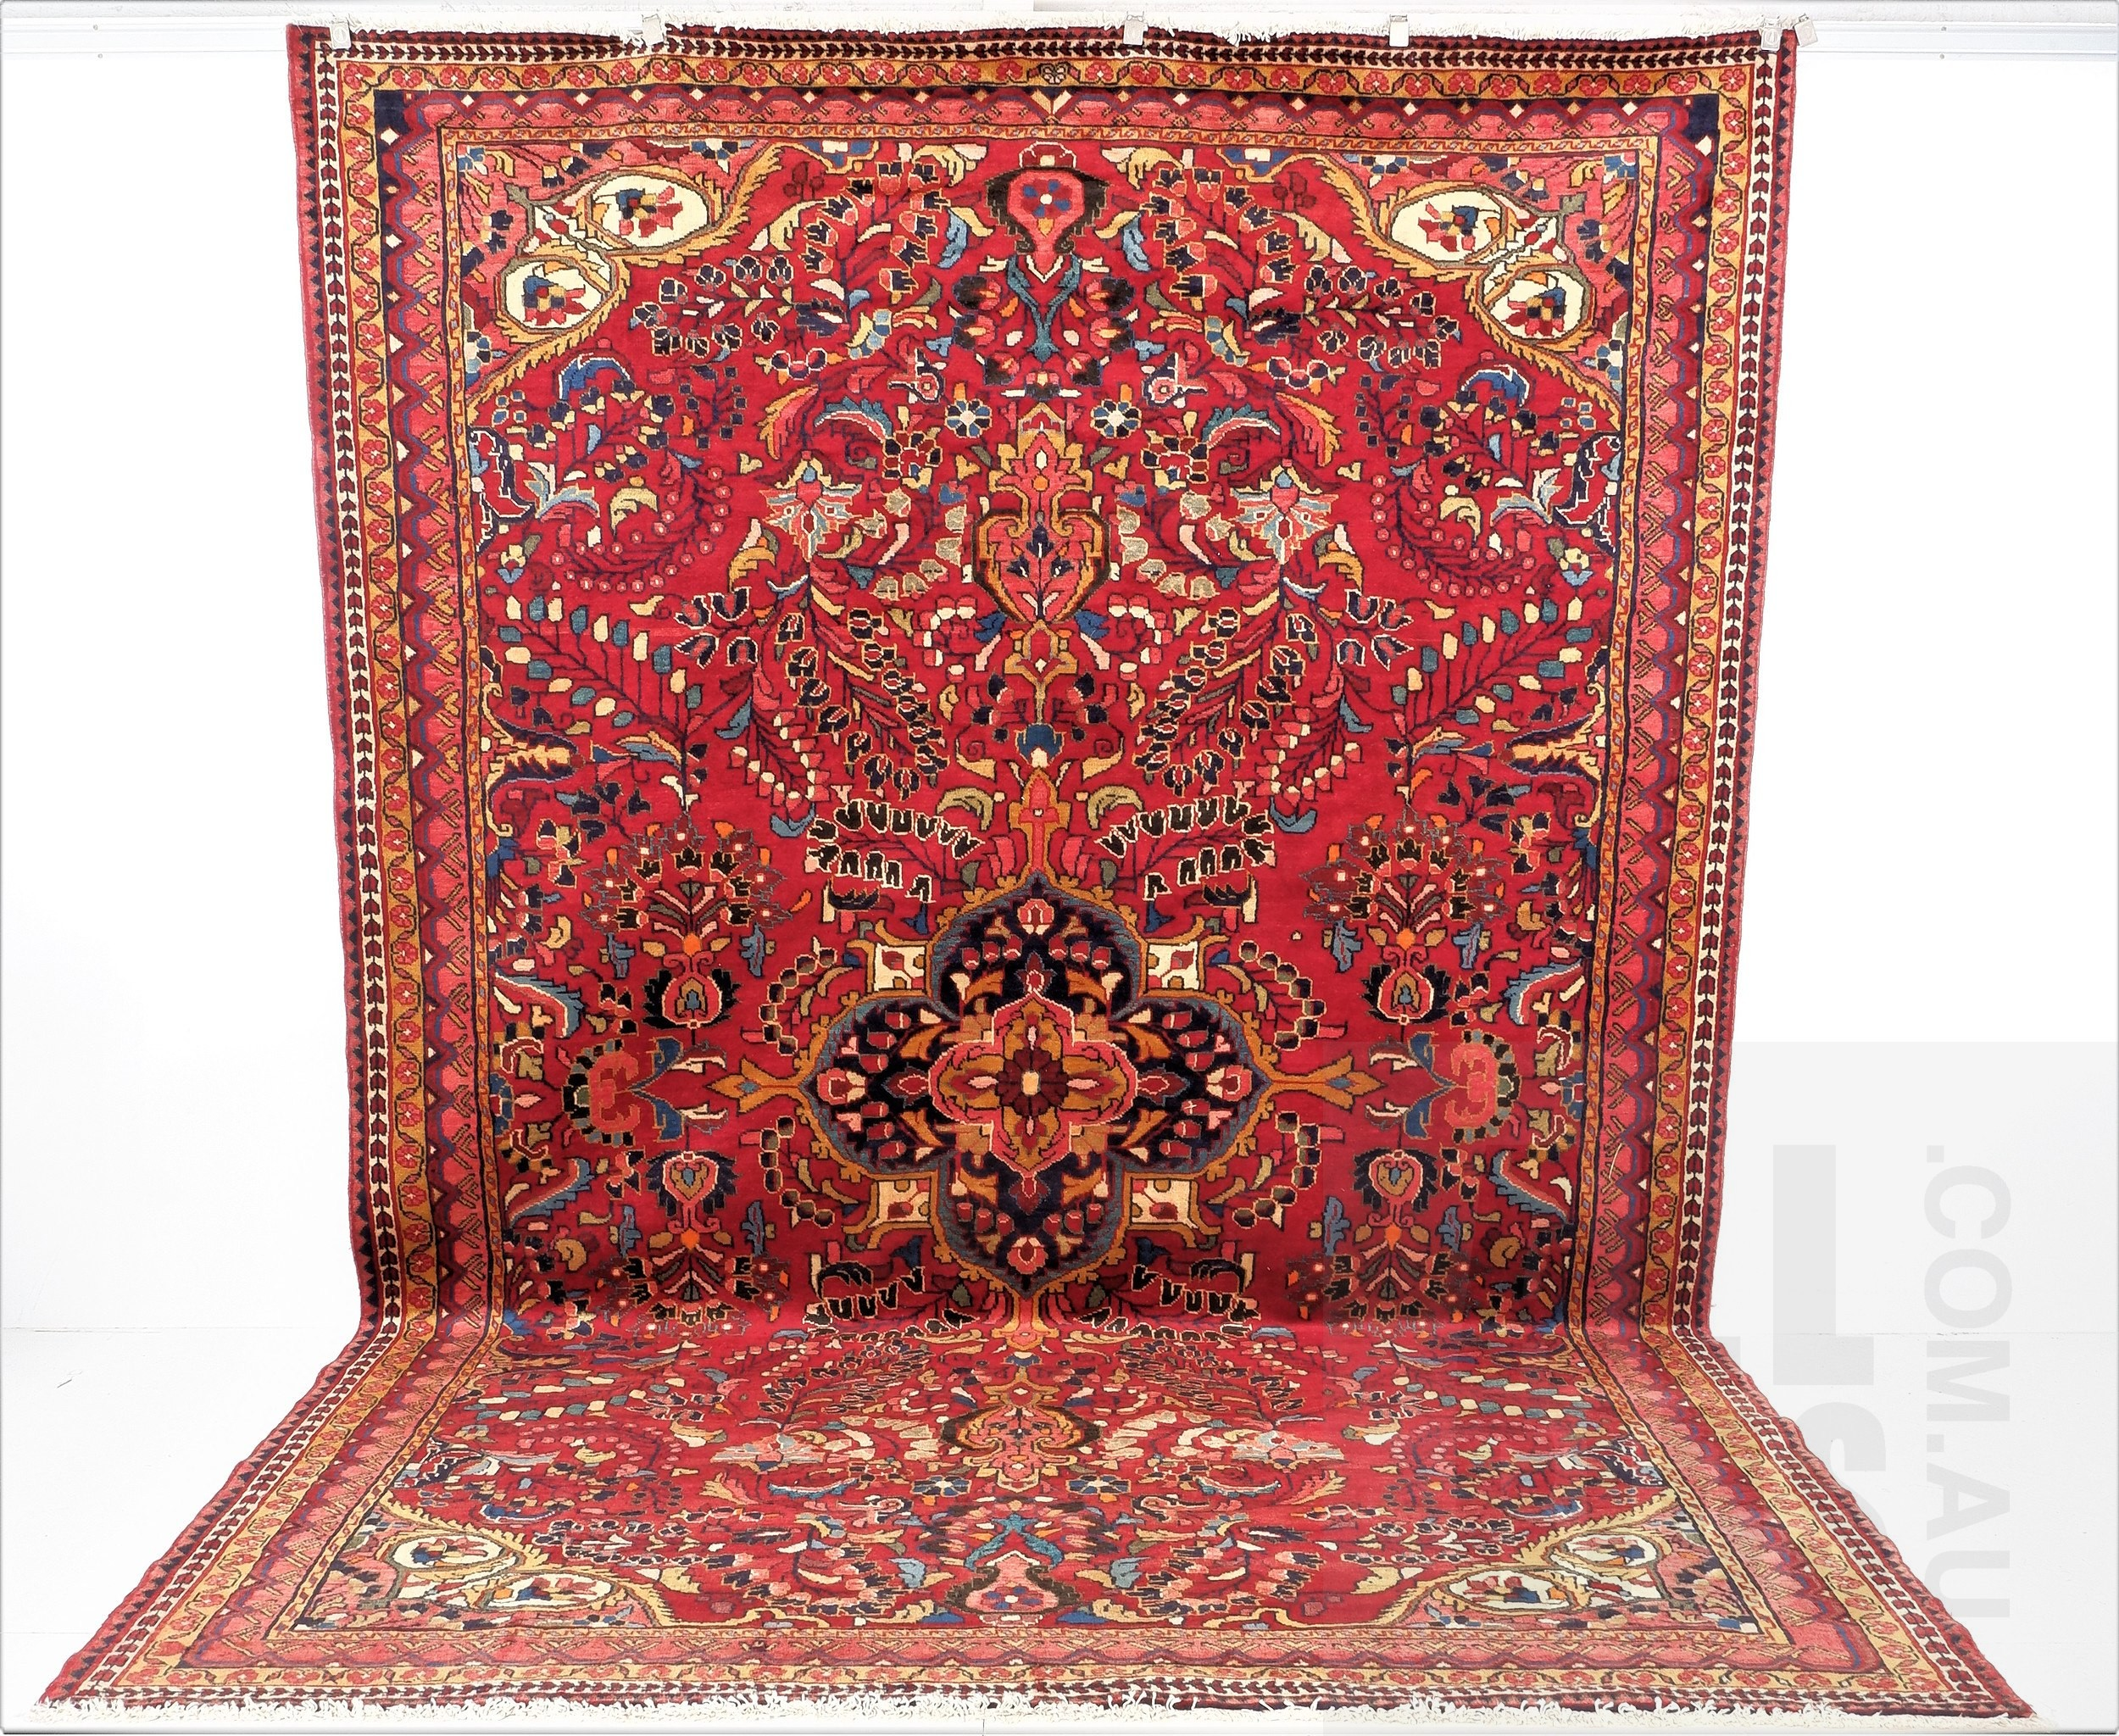 'Large Vintage Persian Lilian Hand Knotted Wool Pile Carpet '